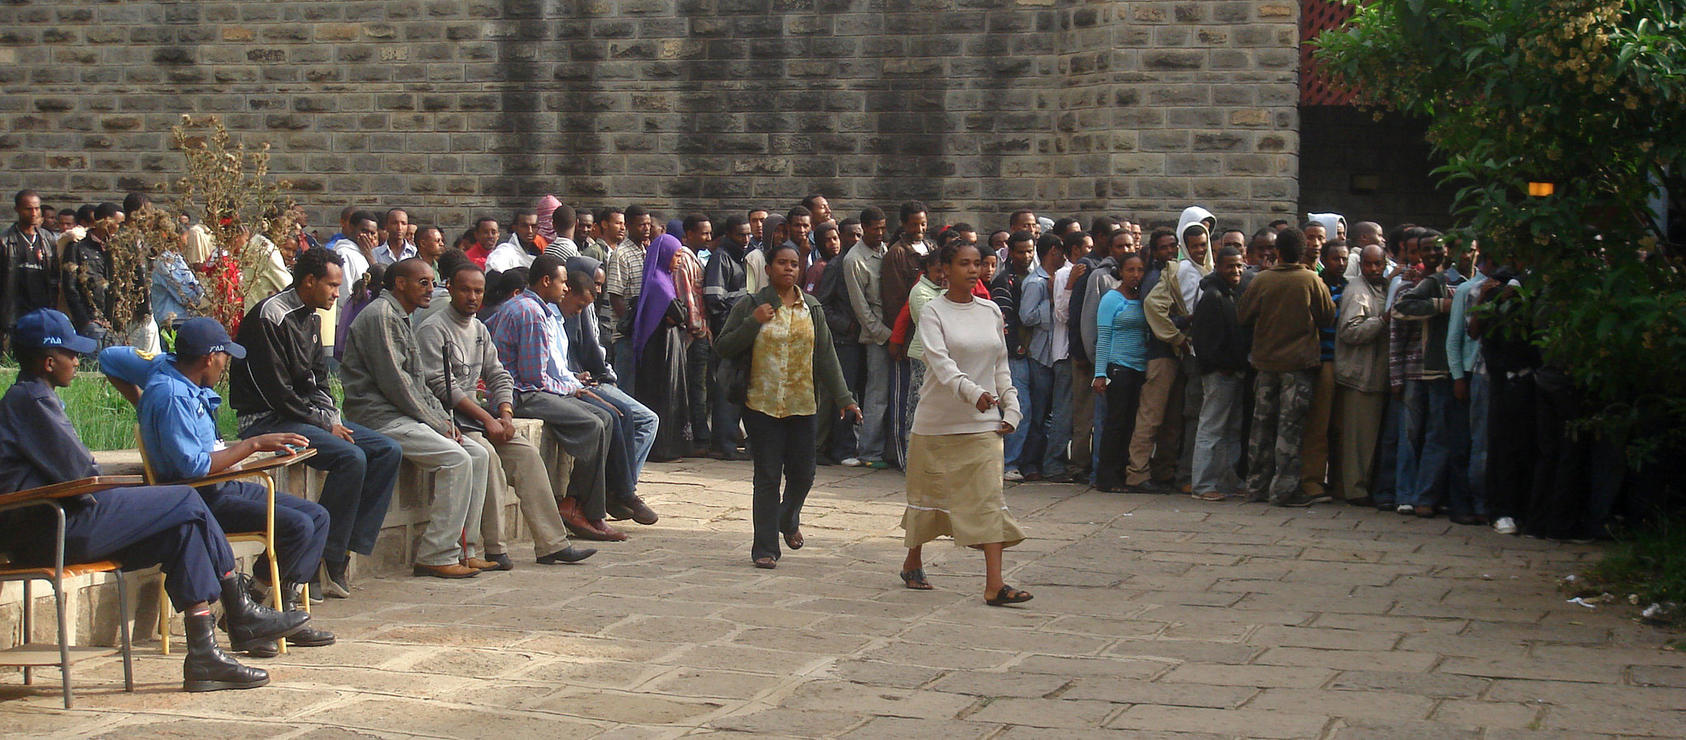 Ethiopian voters in Addis Ababa, the capital city, wait in line to vote during 2010 general elections. (Uduak Amimo)